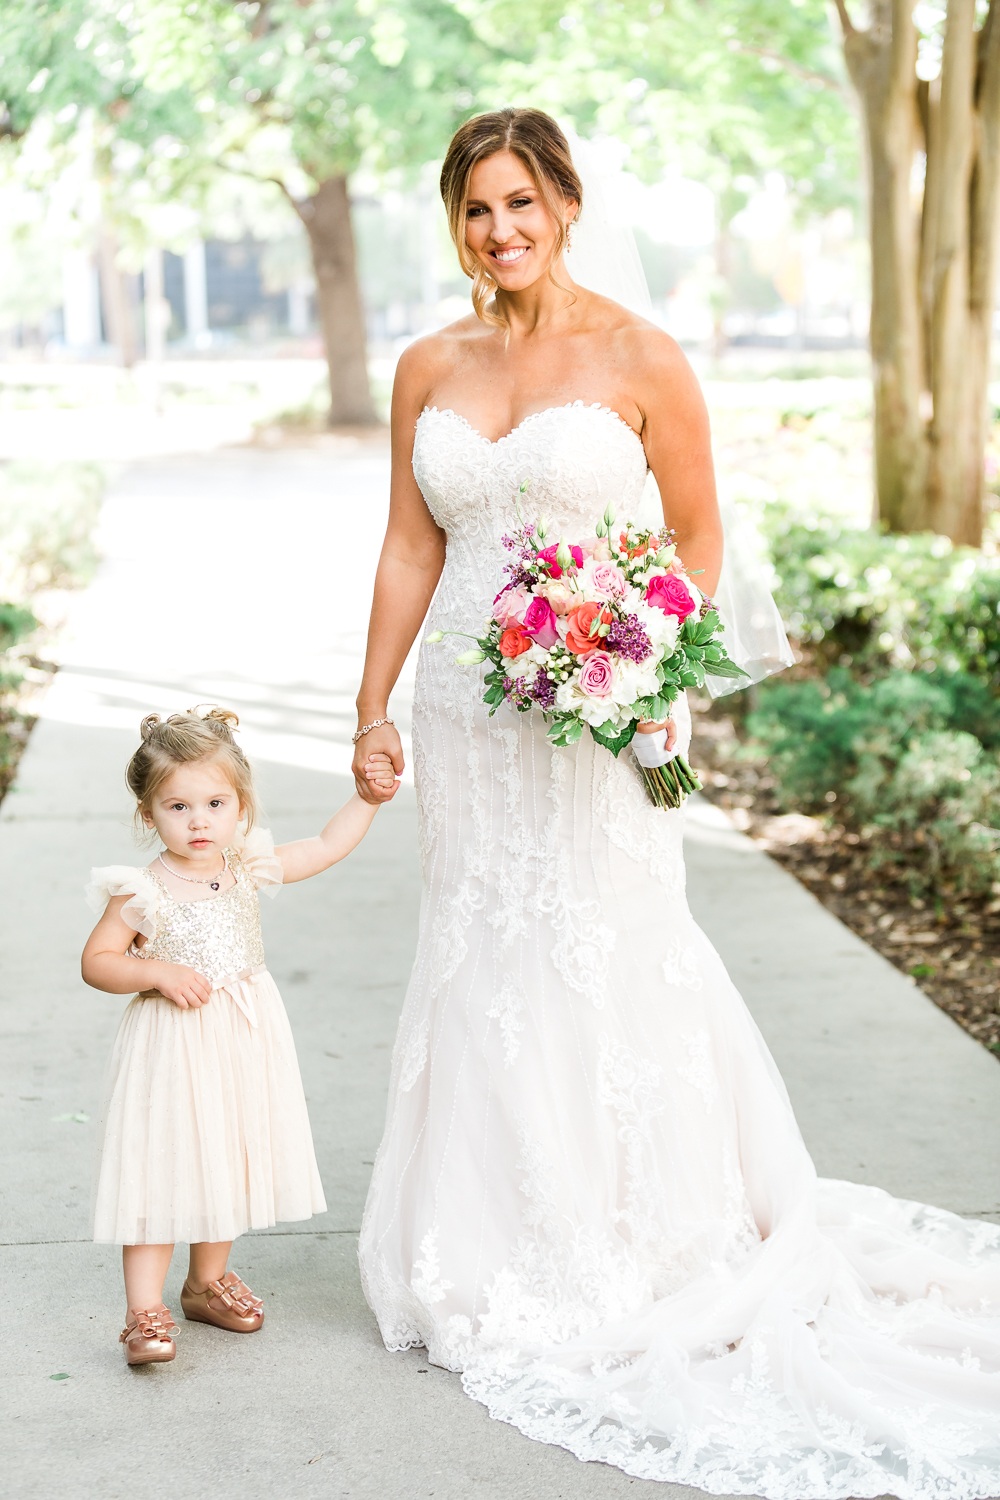 Bride with her little flower girl in Jacksonville, FL